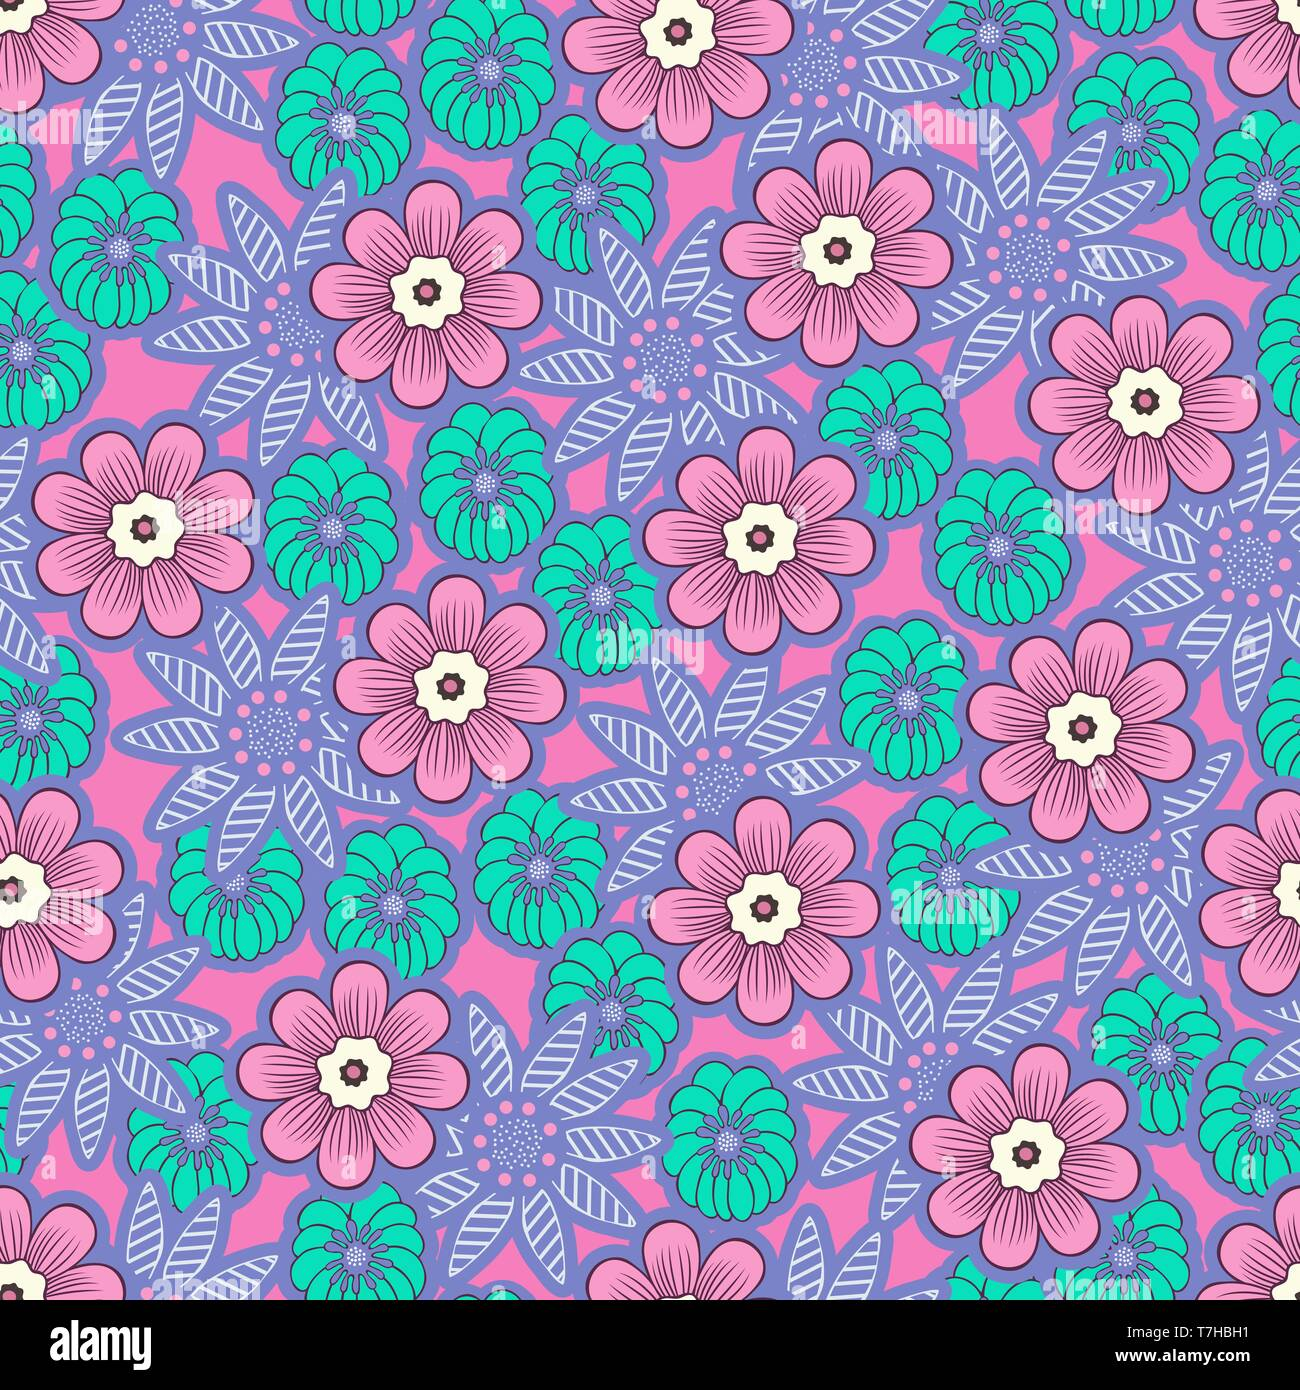 Doodle Flowers Seamless Pattern Colorful Floral Background